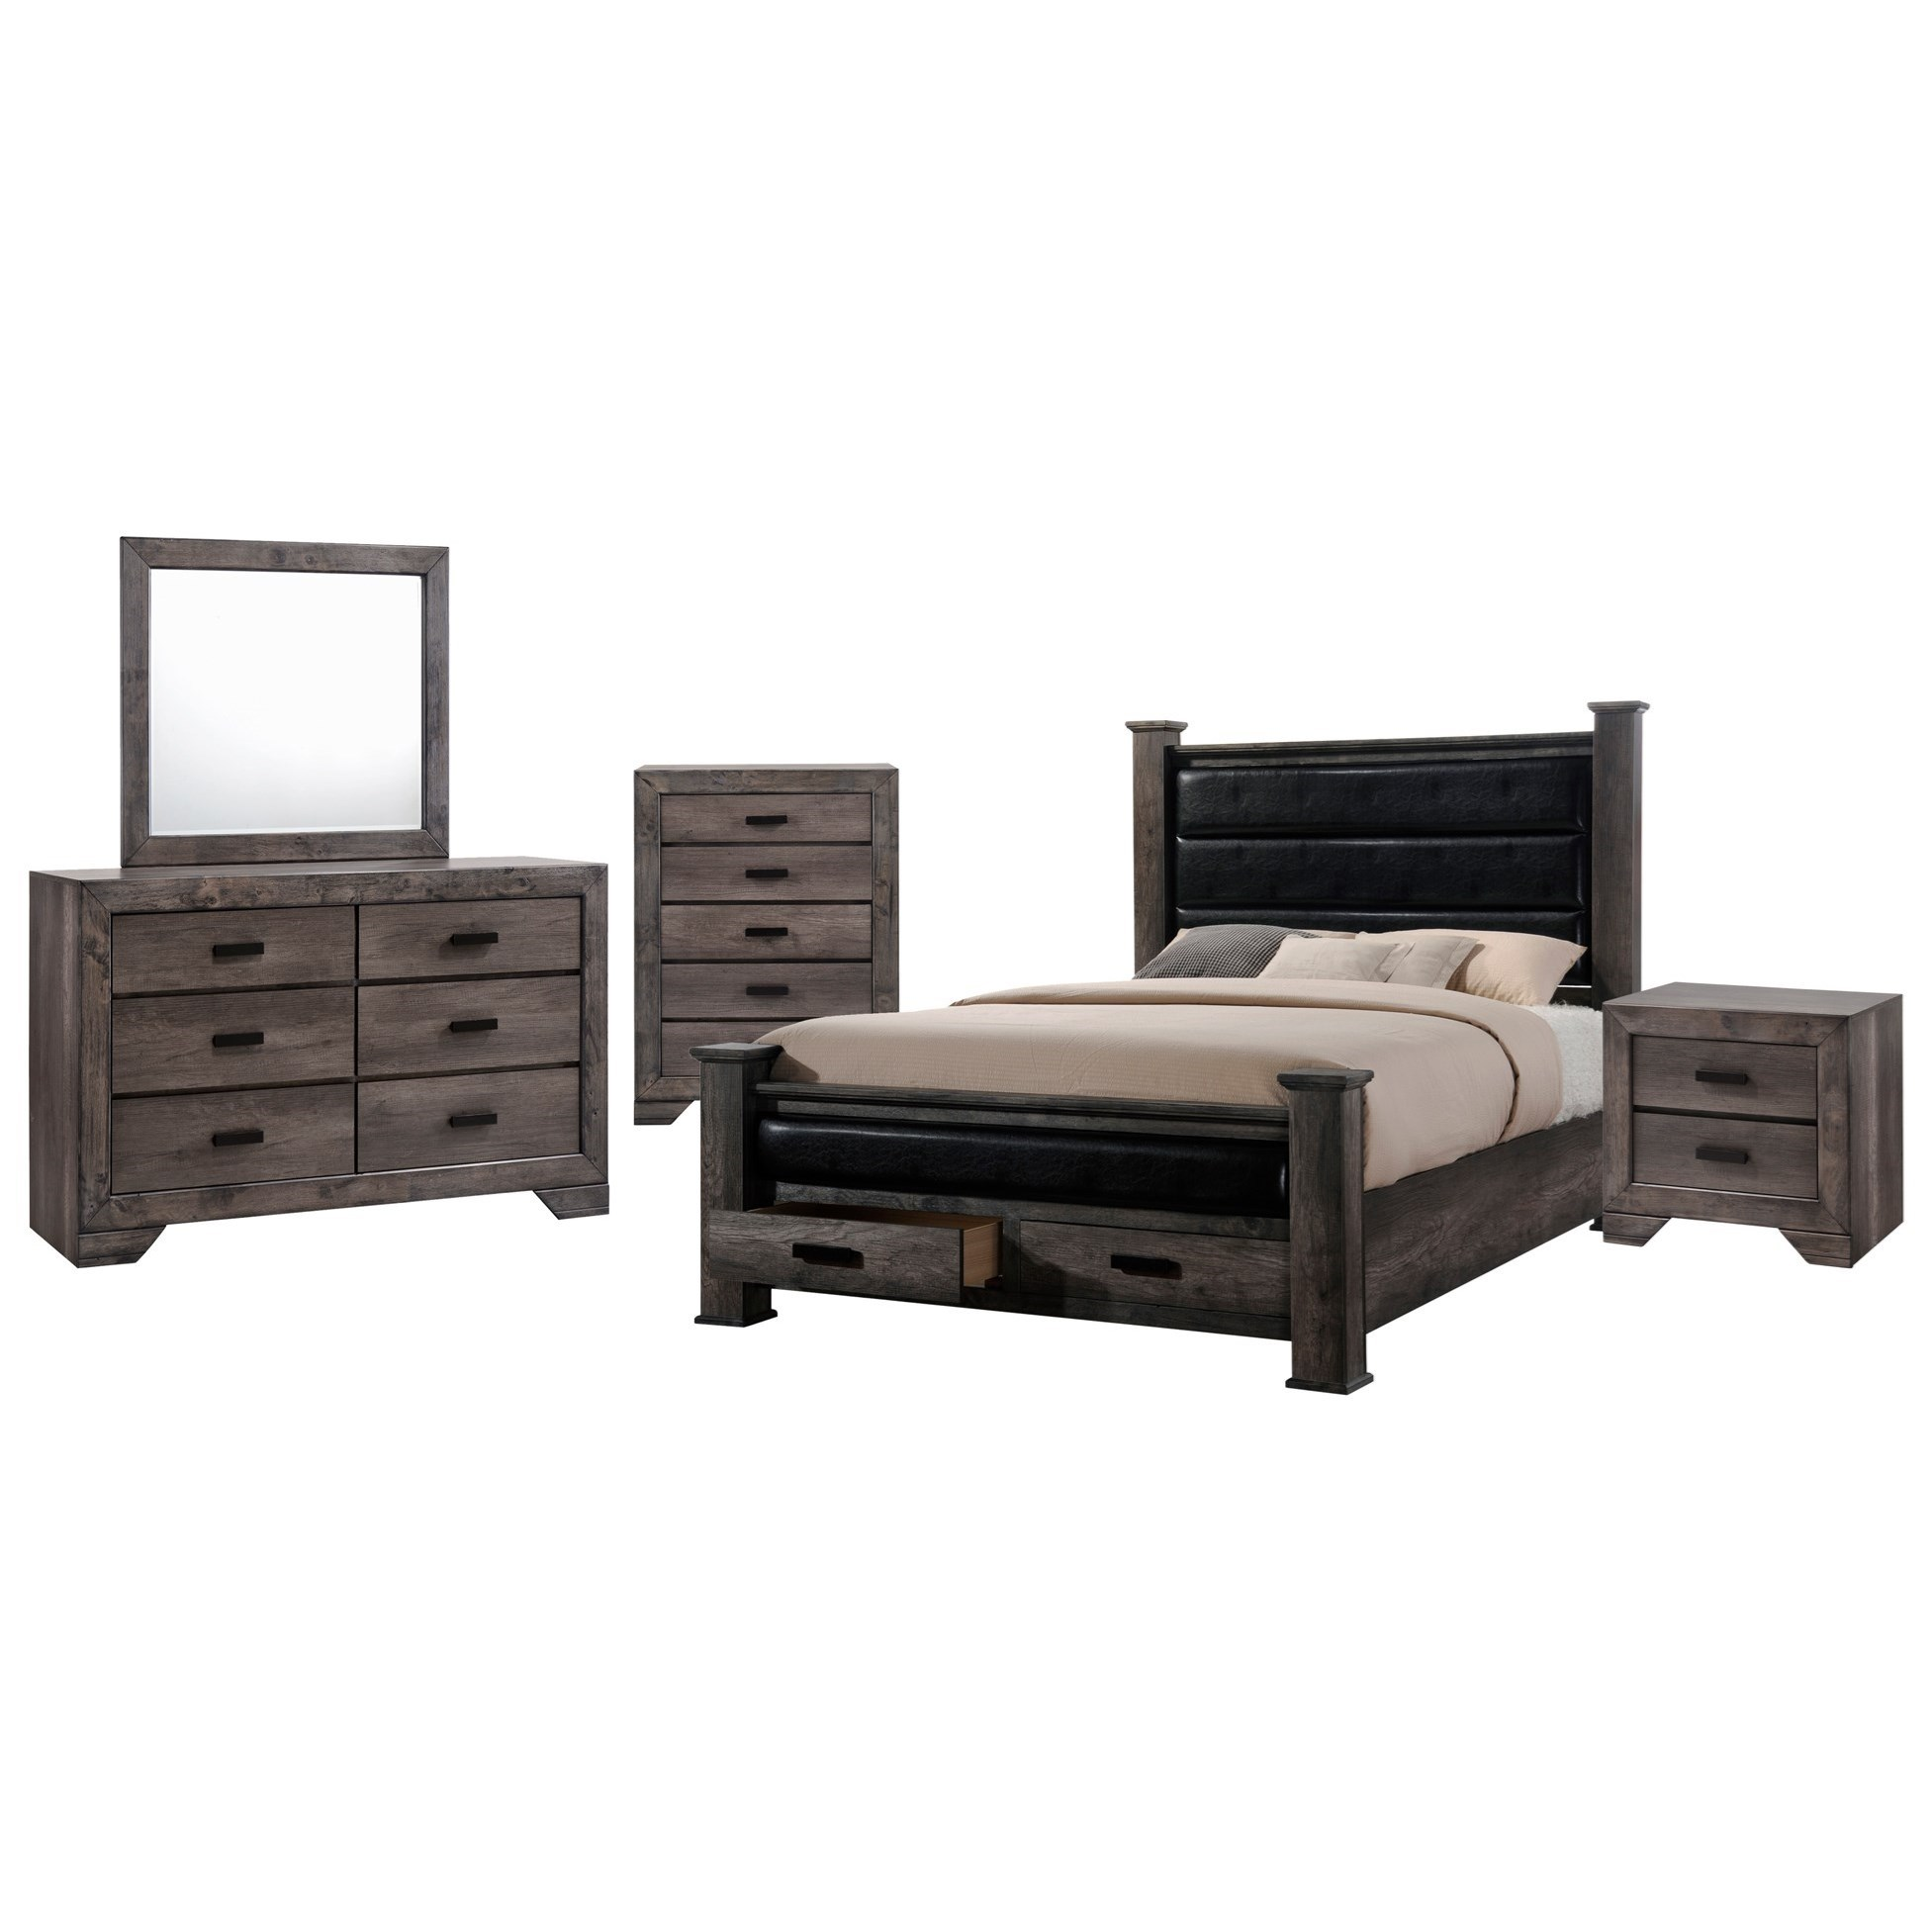 Nathan 5-Piece King Bedroom Set by Elements at Royal Furniture